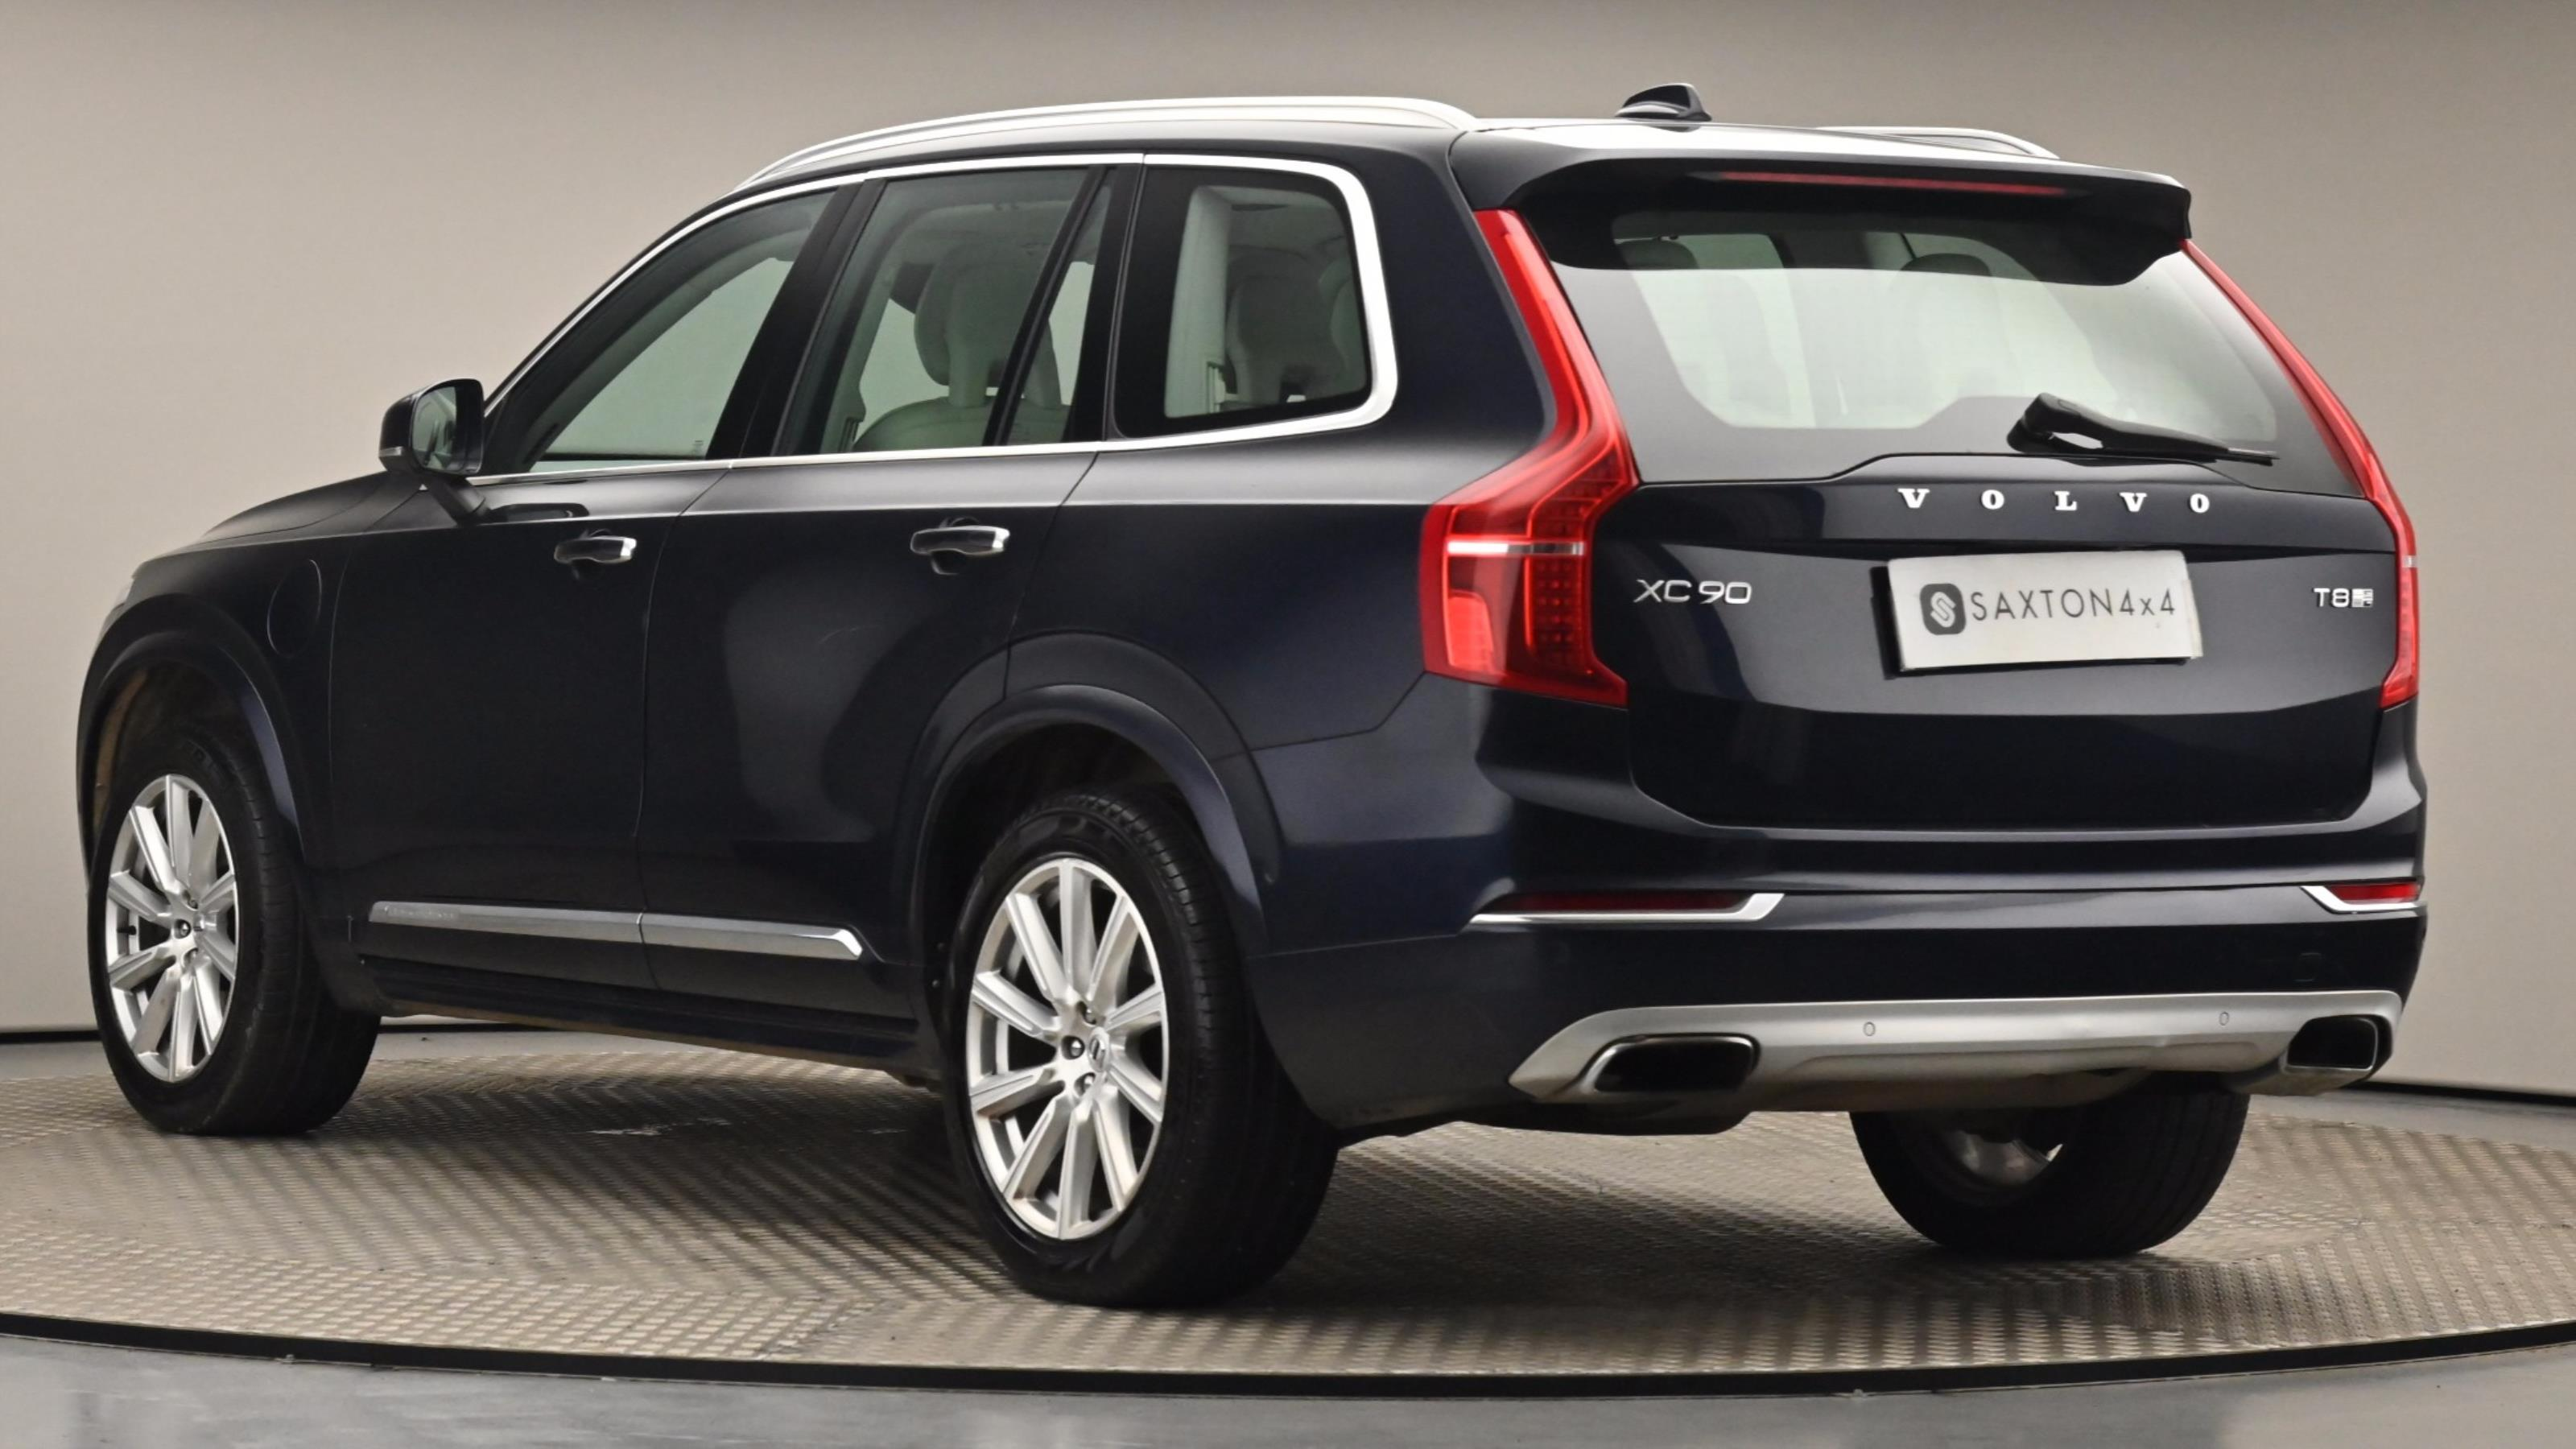 Used 2017 Volvo XC90 2.0 T8 Hybrid Inscription 5dr Geartronic BLUE at Saxton4x4